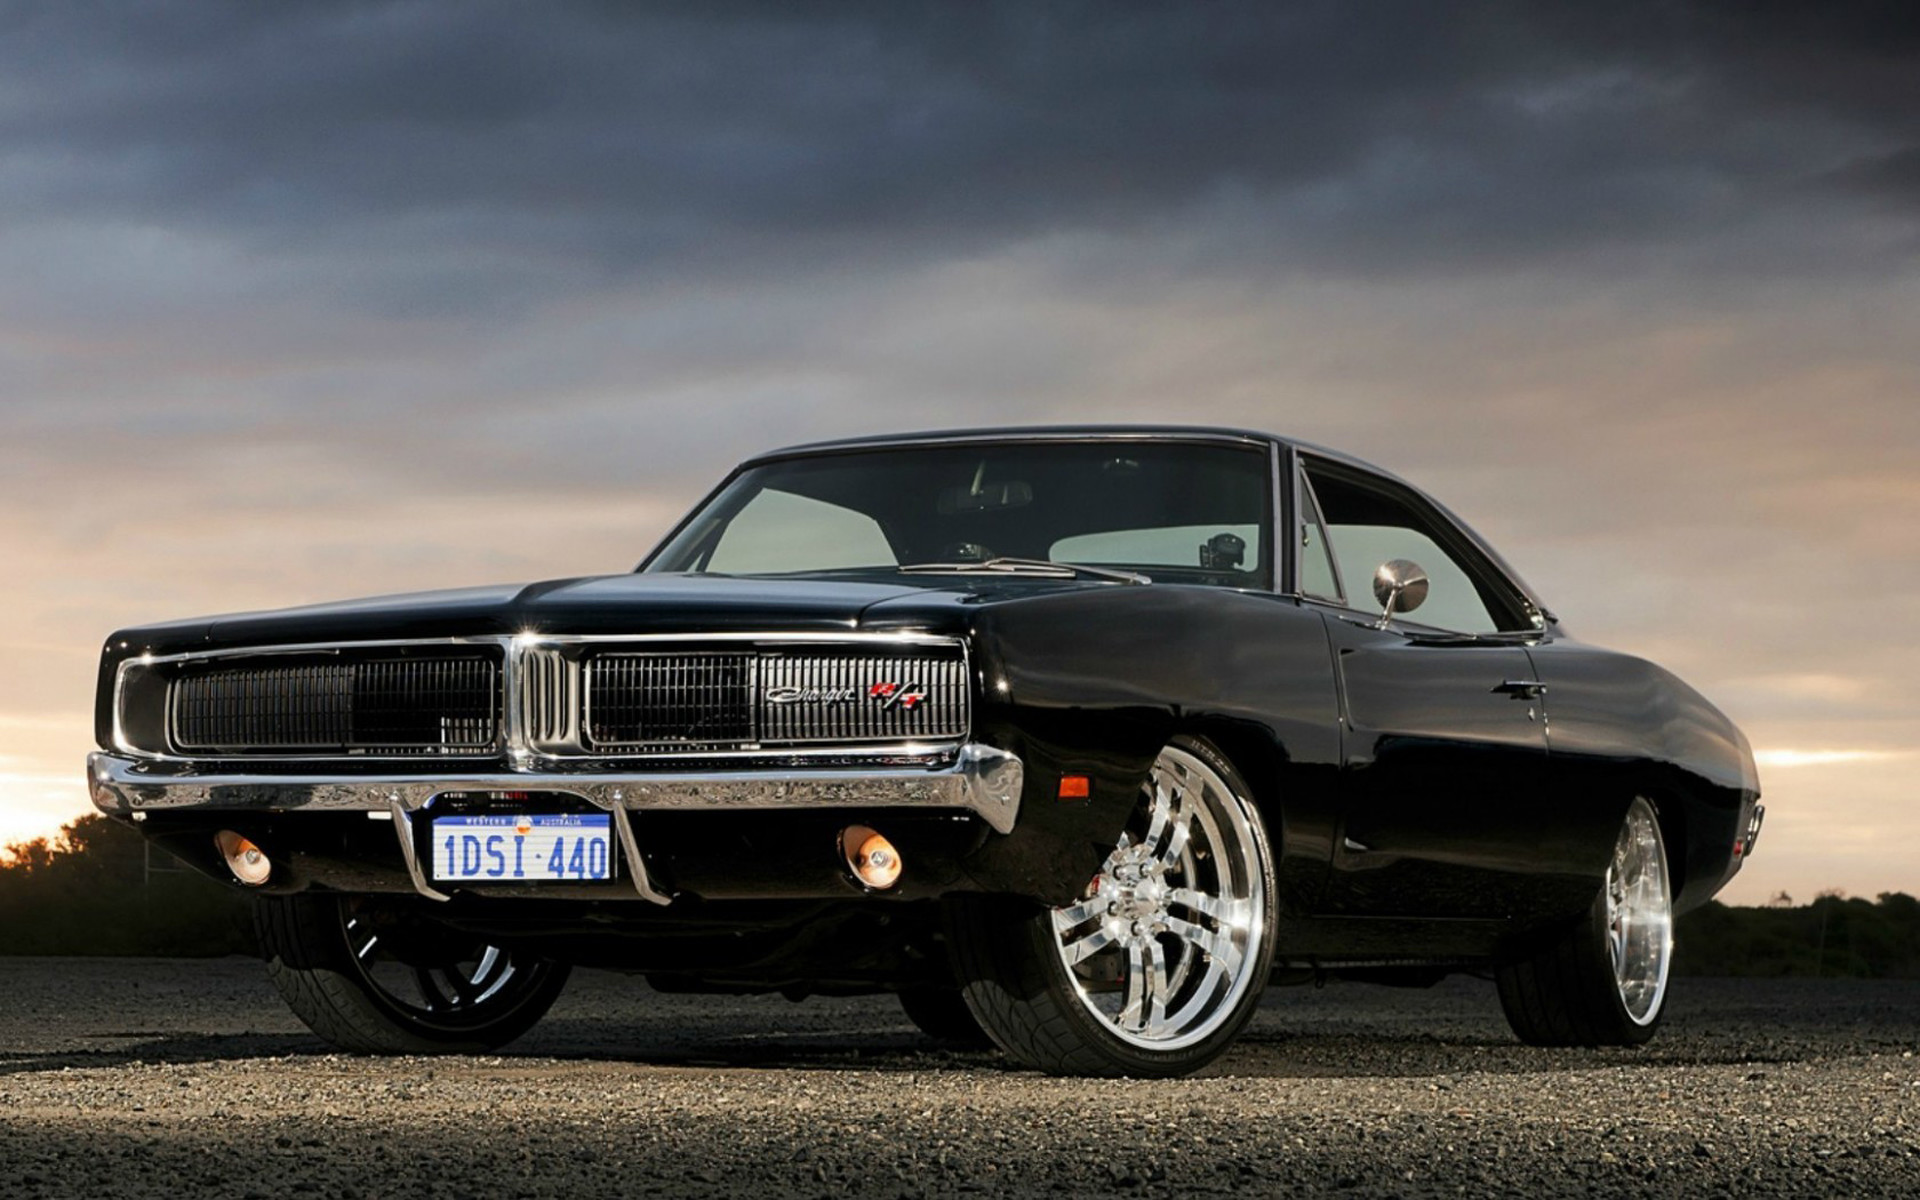 Dodge Charger R/T Computer Wallpapers, Desktop Backgrounds